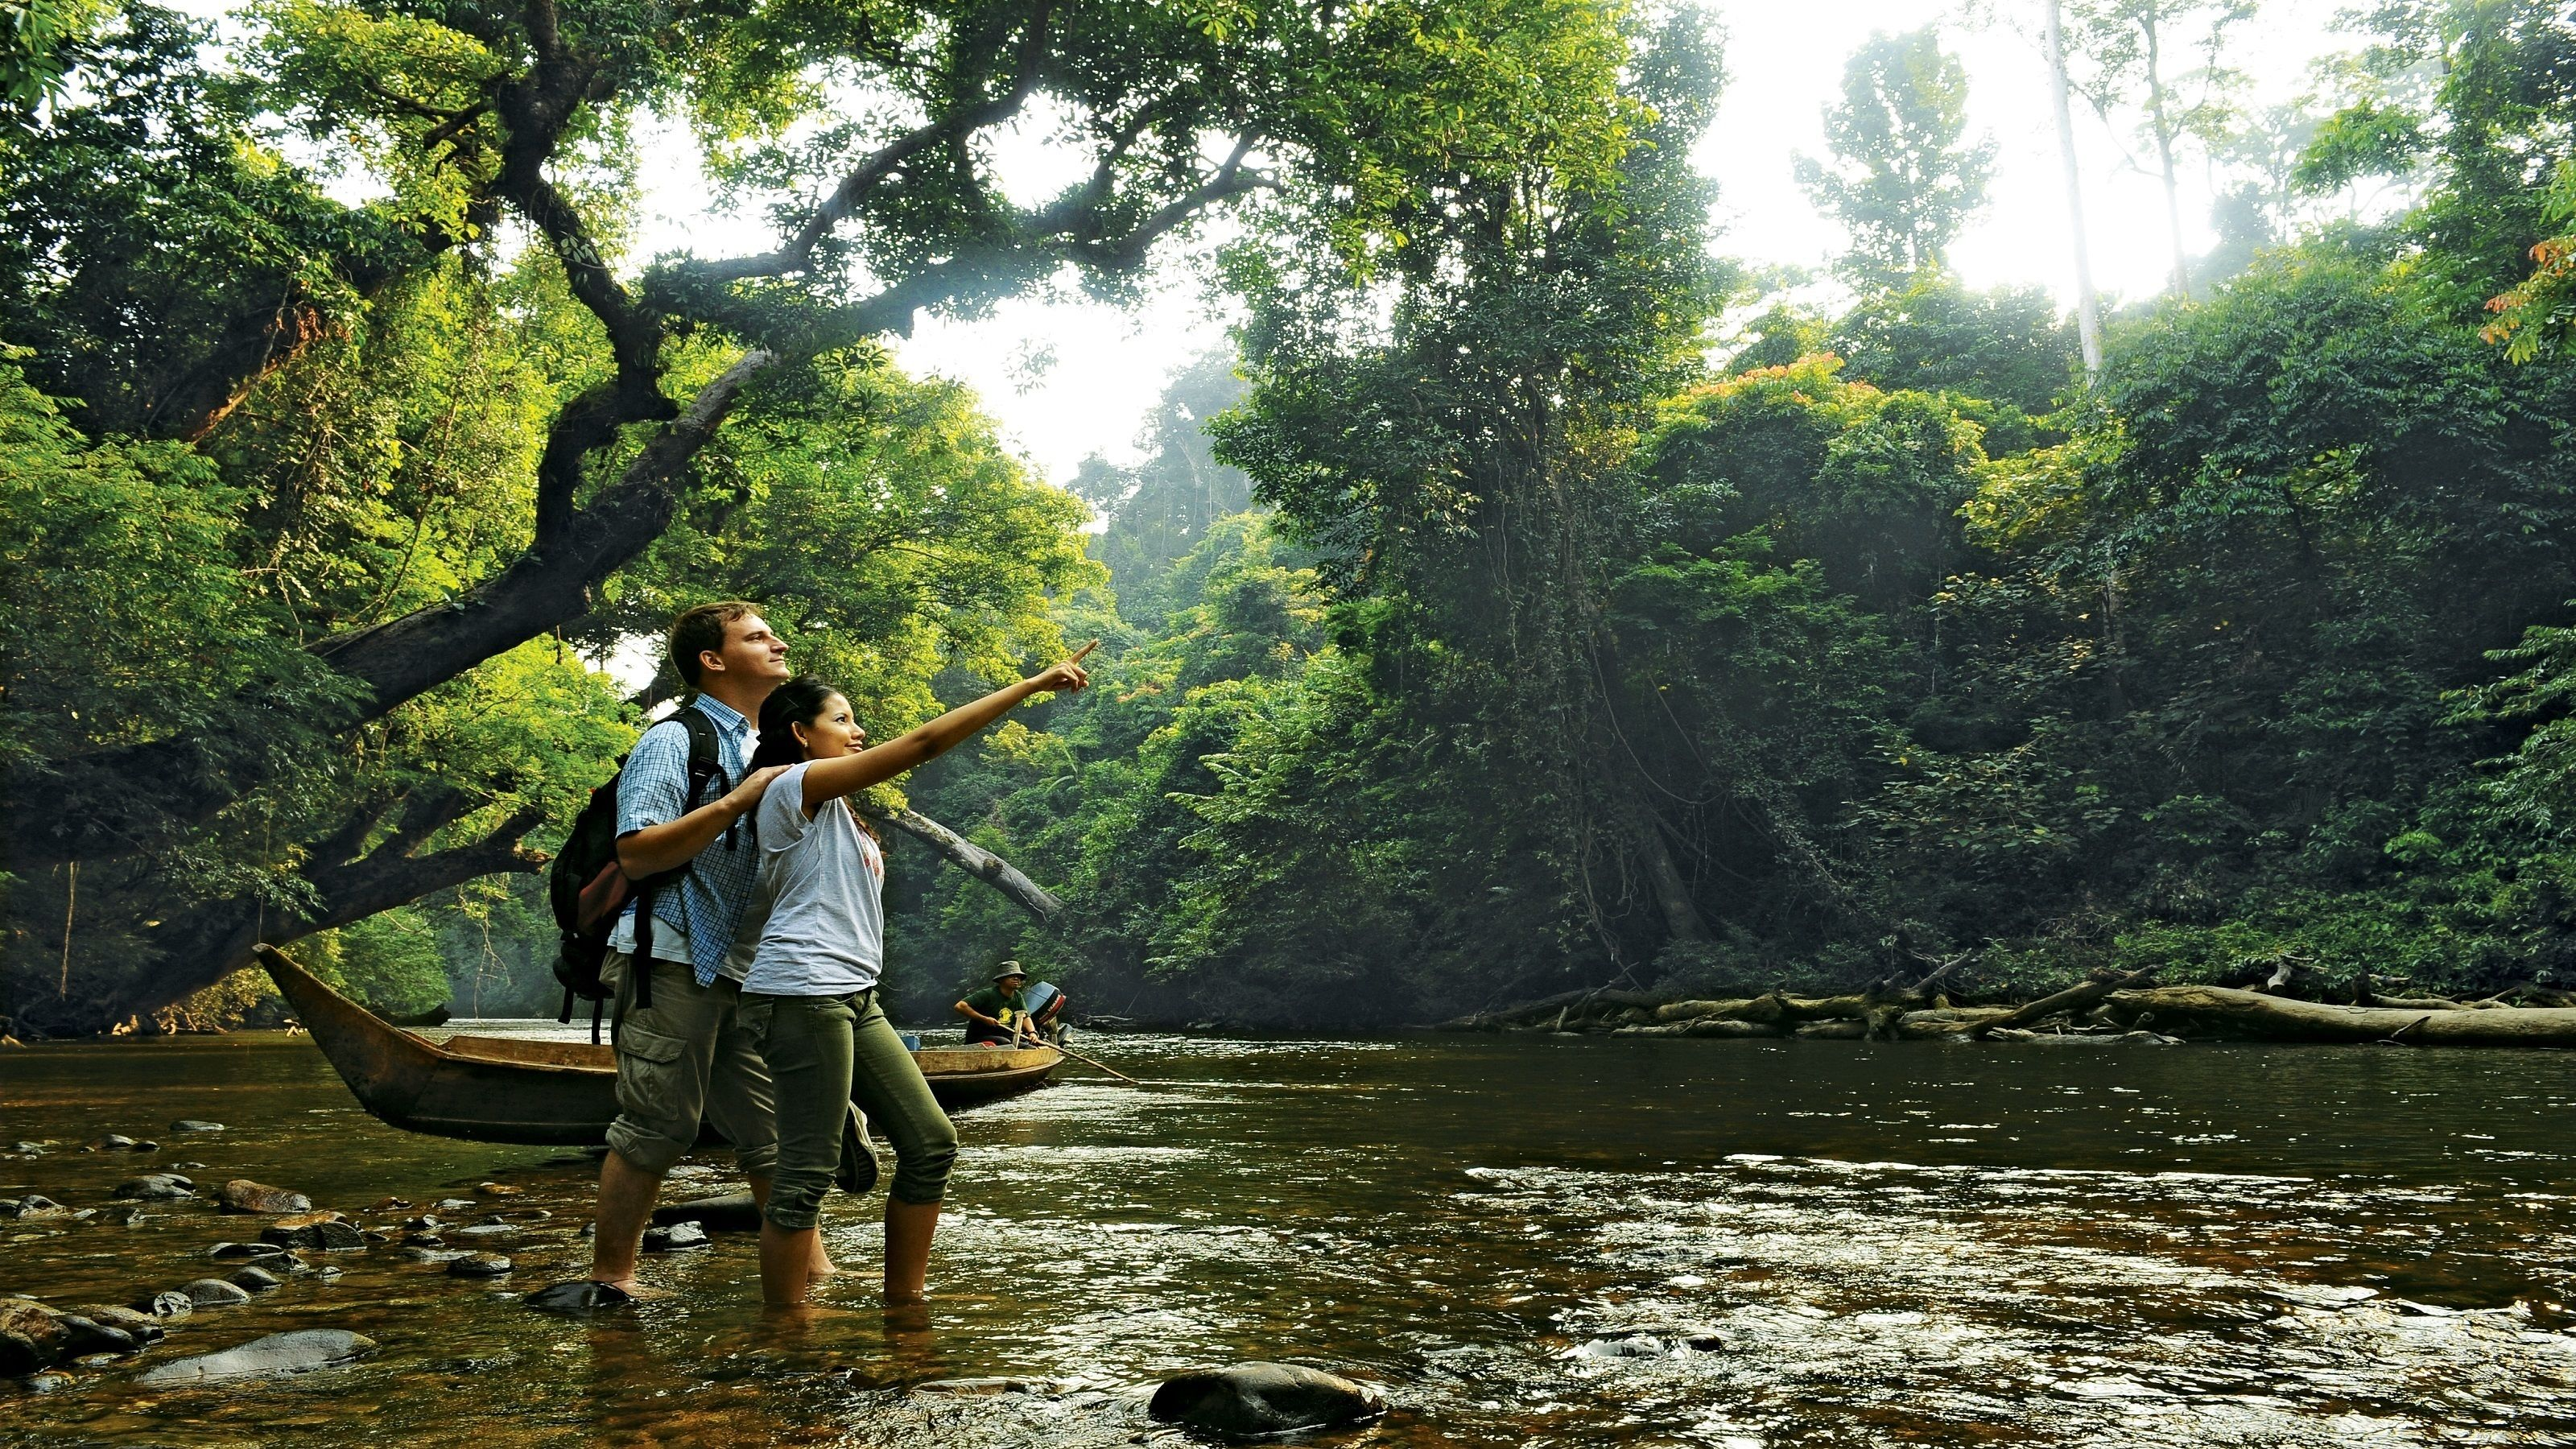 Full-Day Excursion to Taman Negara National Park